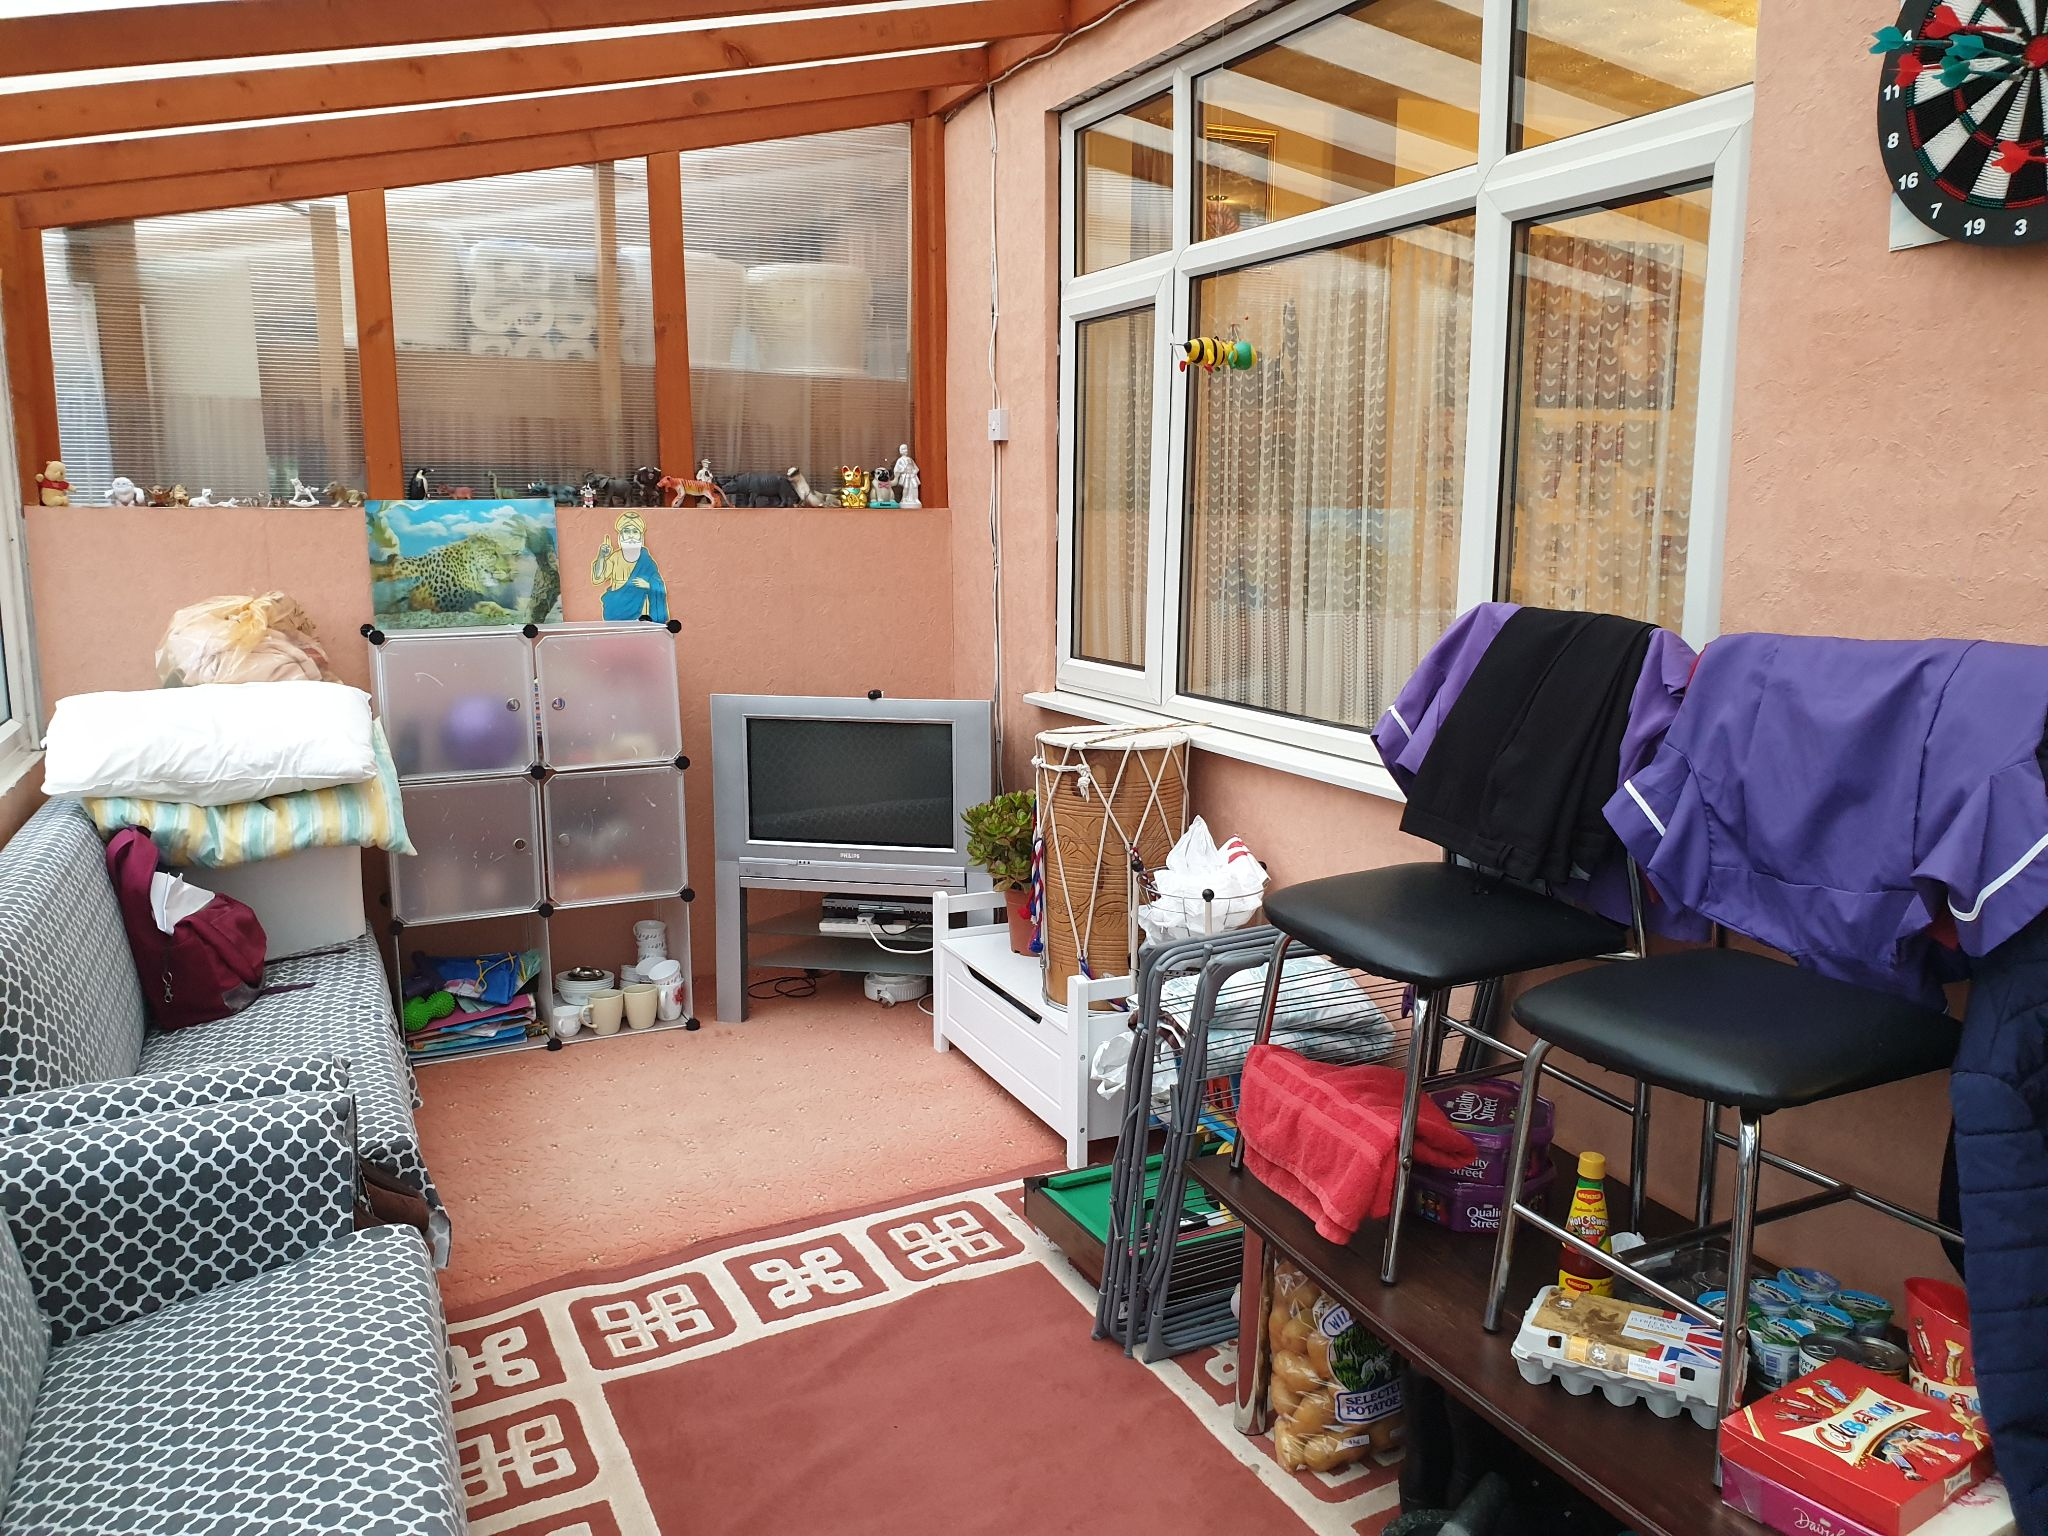 3 Bedroom Semi-detached House For Sale 35 Marston Road Image 7